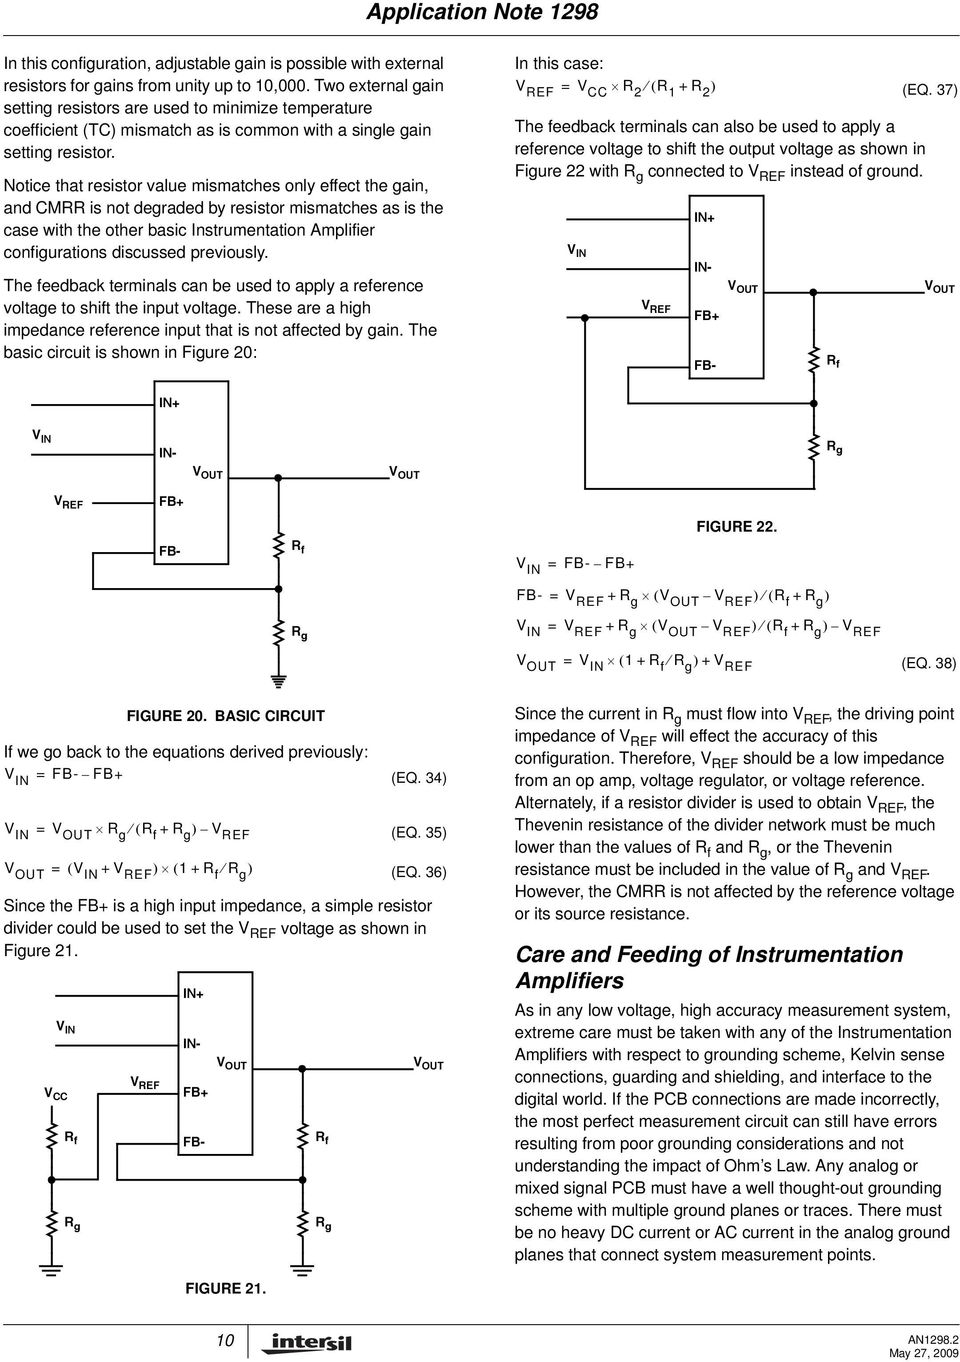 Instrumentation Amplifier Application Note Pdf Computer Integrated Circuit Diagram Filtercircuit Basiccircuit Notice That Resistor Value Mismatches Only Effect The Gain And Cmrr Is Not Degraded By